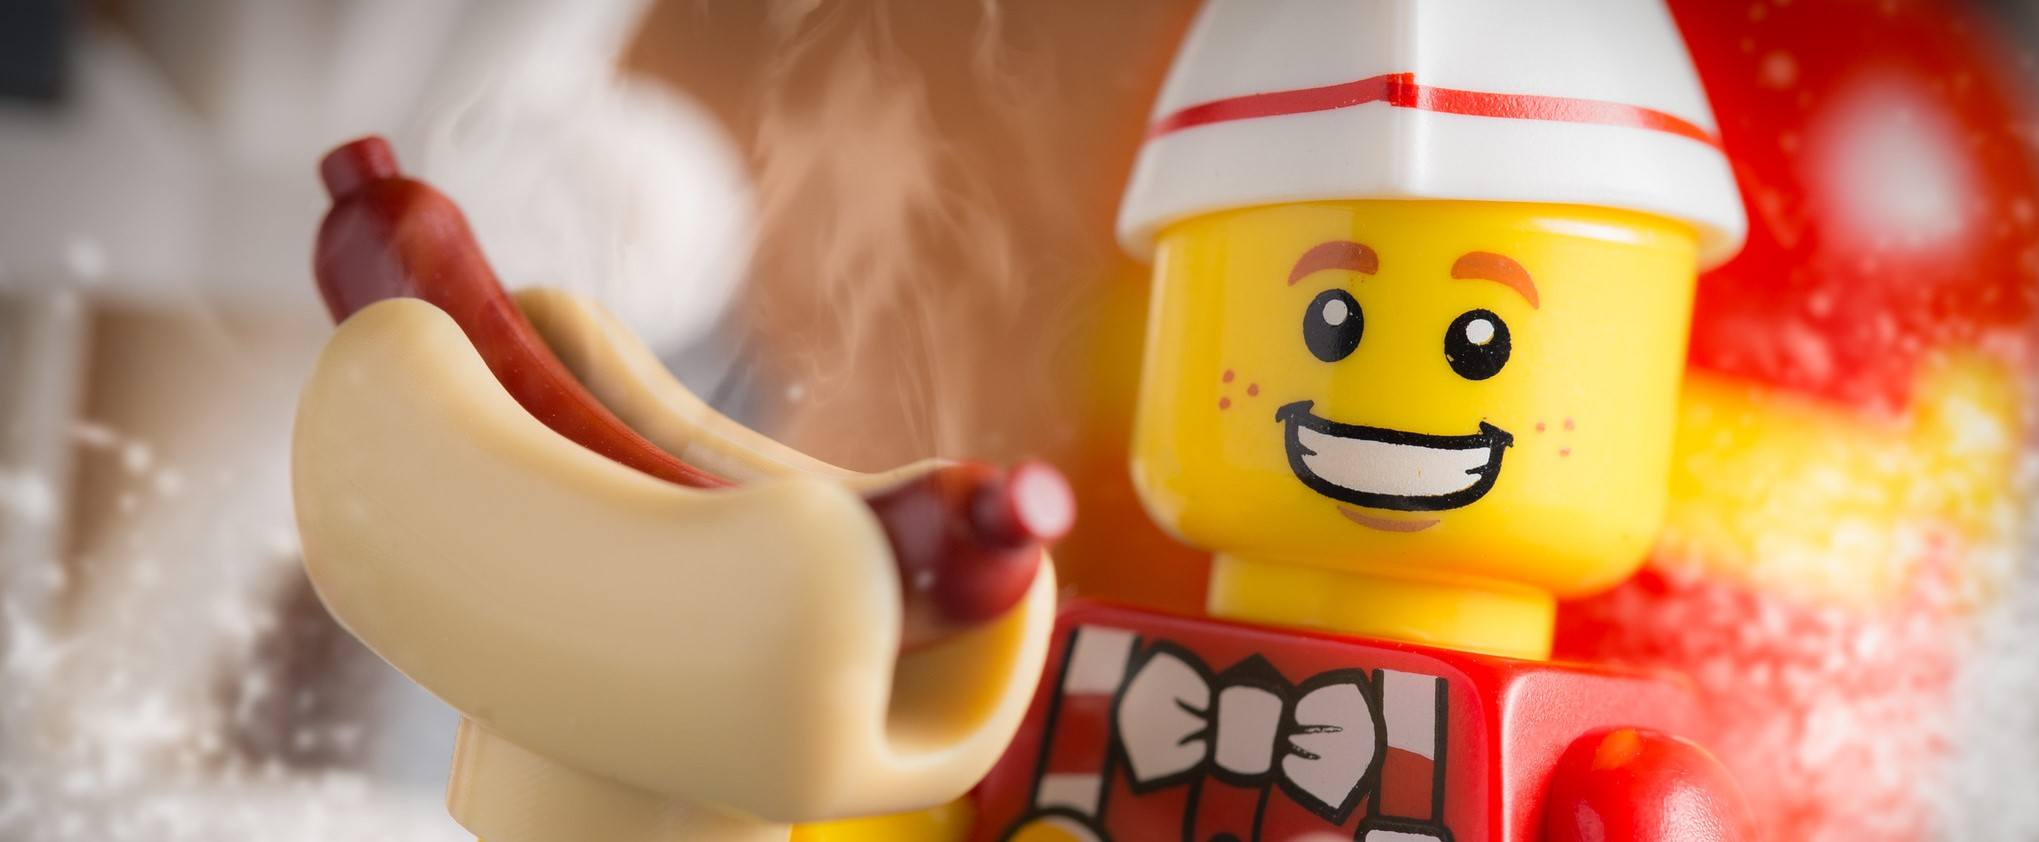 A LEGO holding a hot dog, which may help with his protein goals.